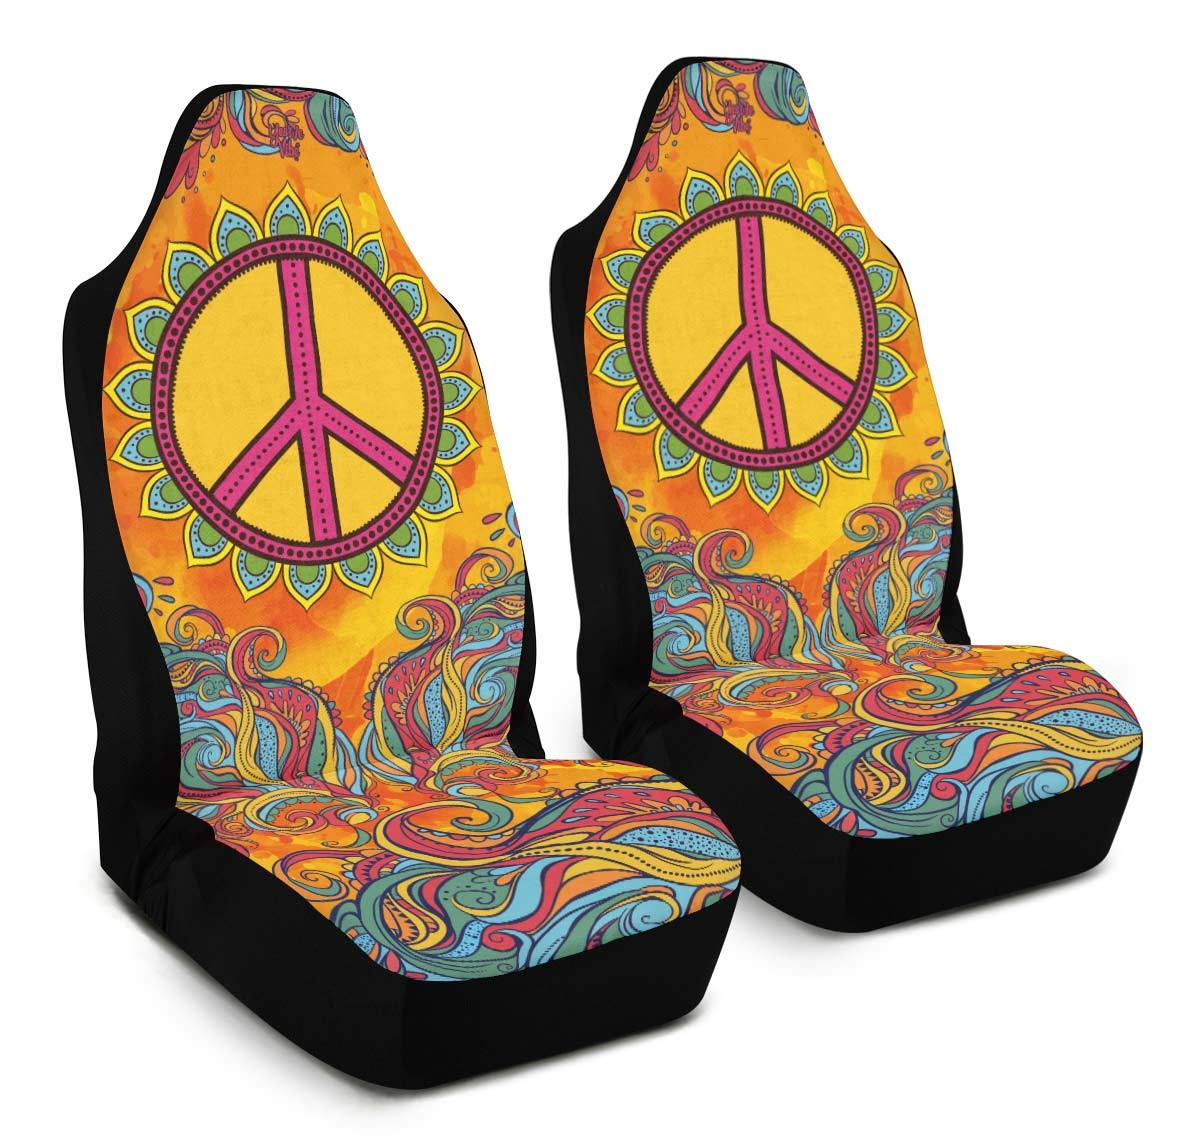 Hippie Car Seat Covers Yes We Vibe